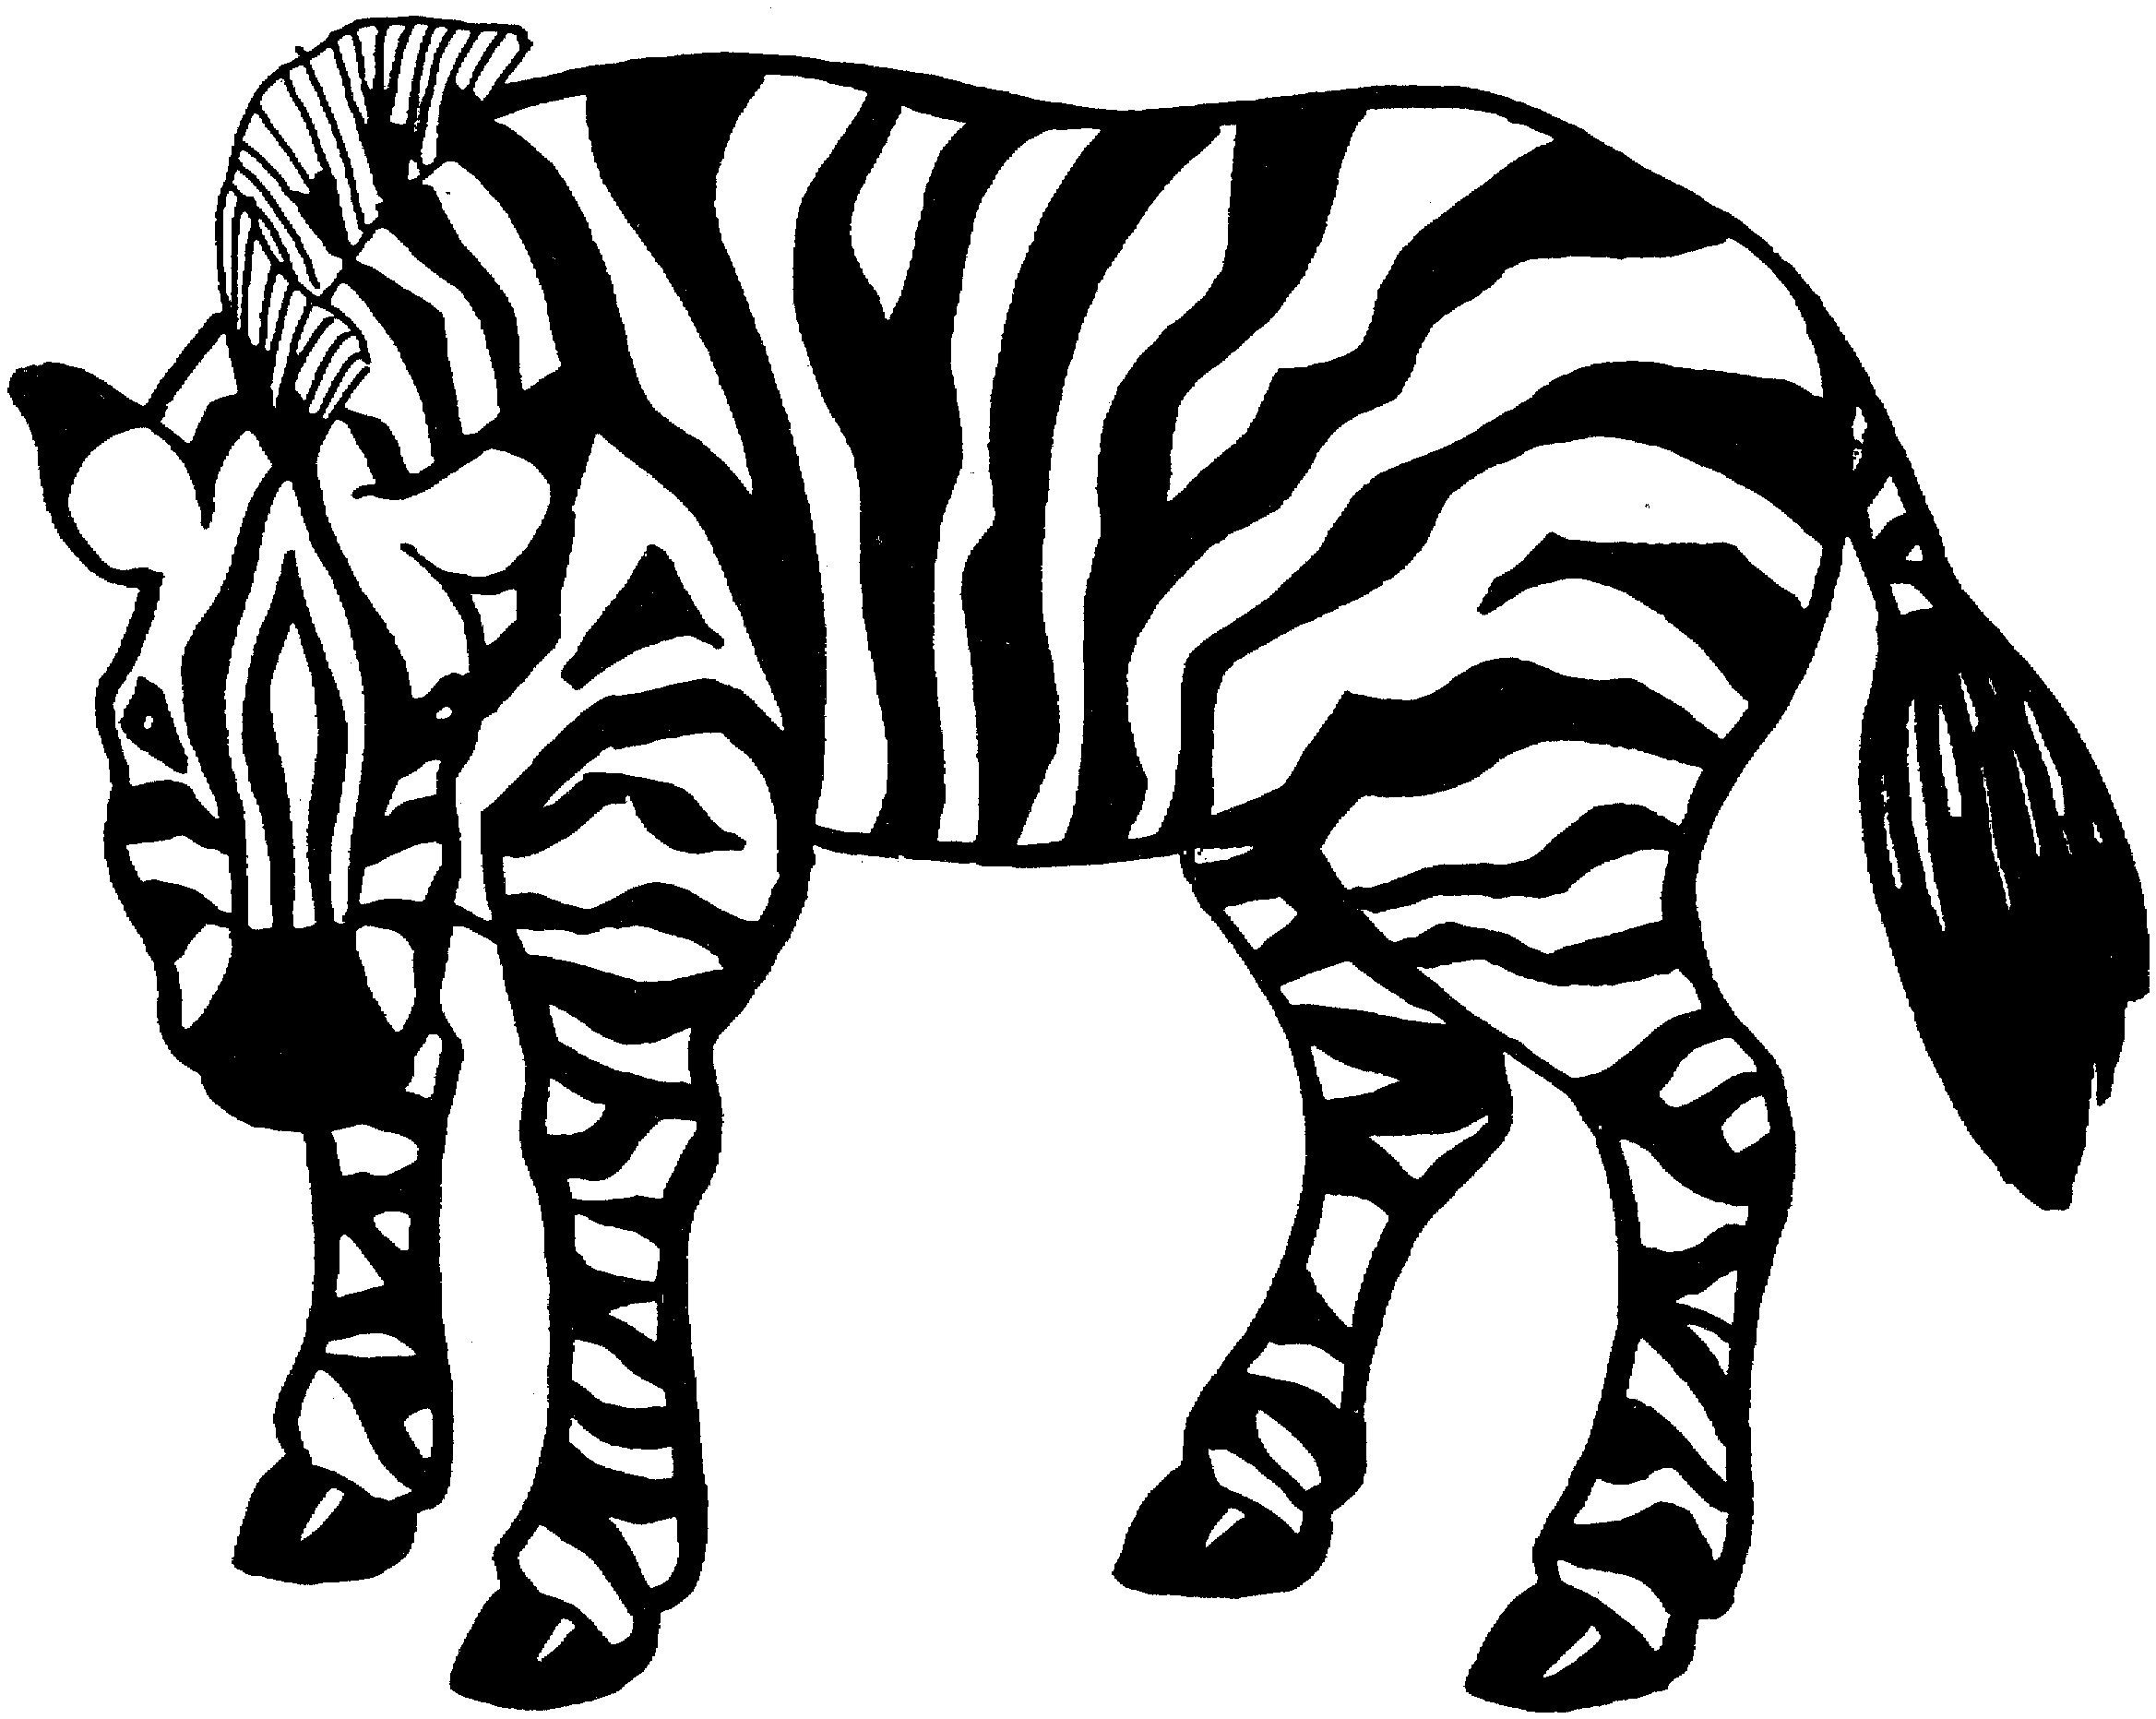 Coloring pages for zebra - Coloring Pages Zebra Image